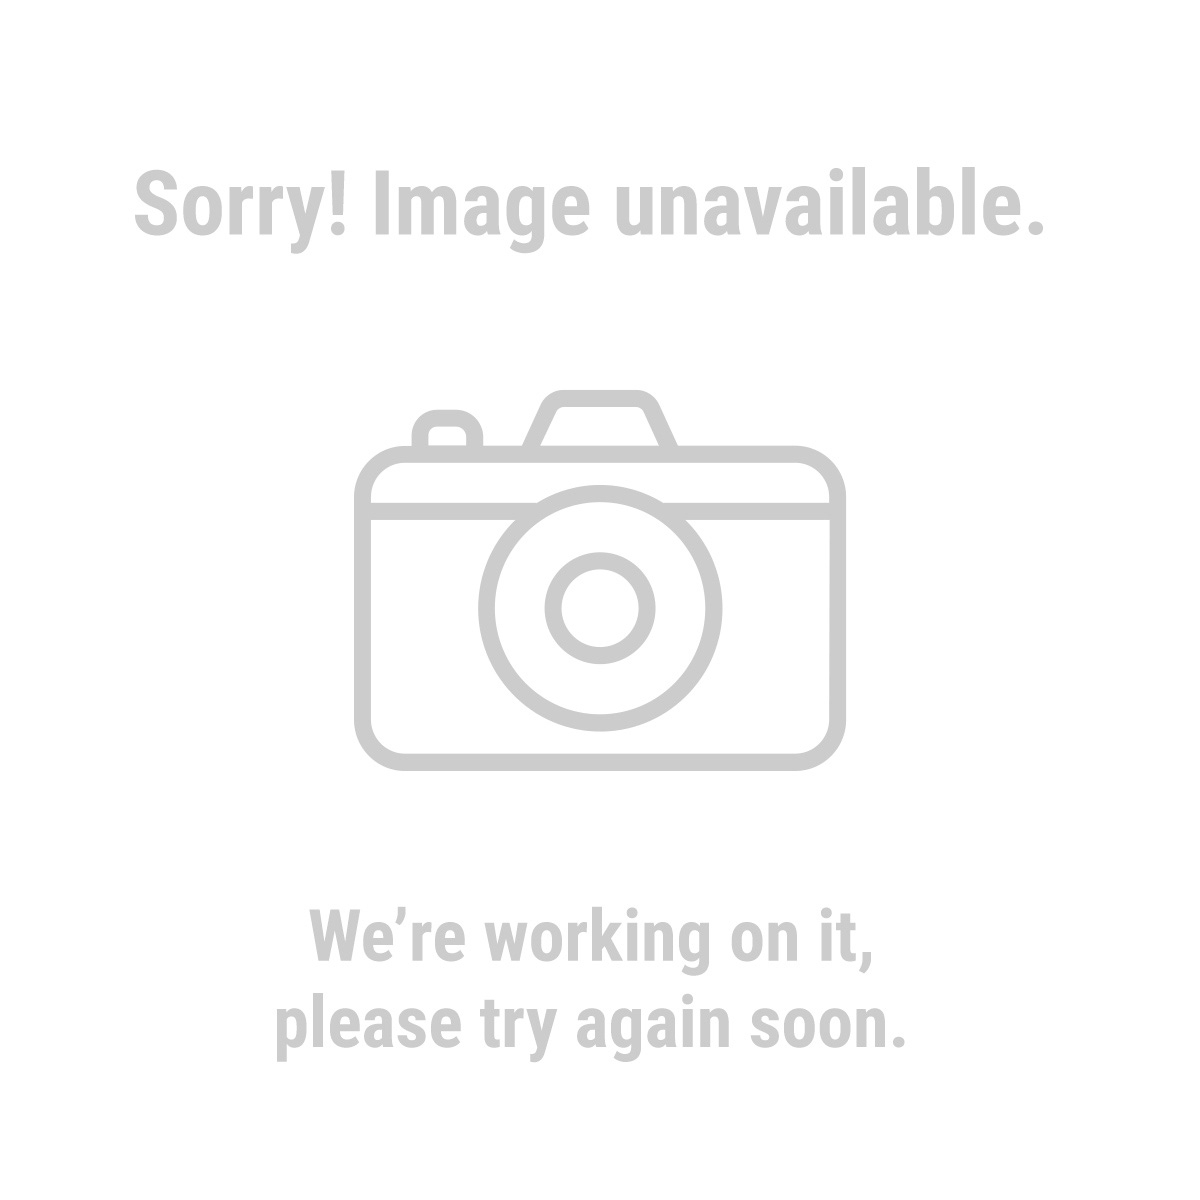 90436 Scorpion Safety Glasses